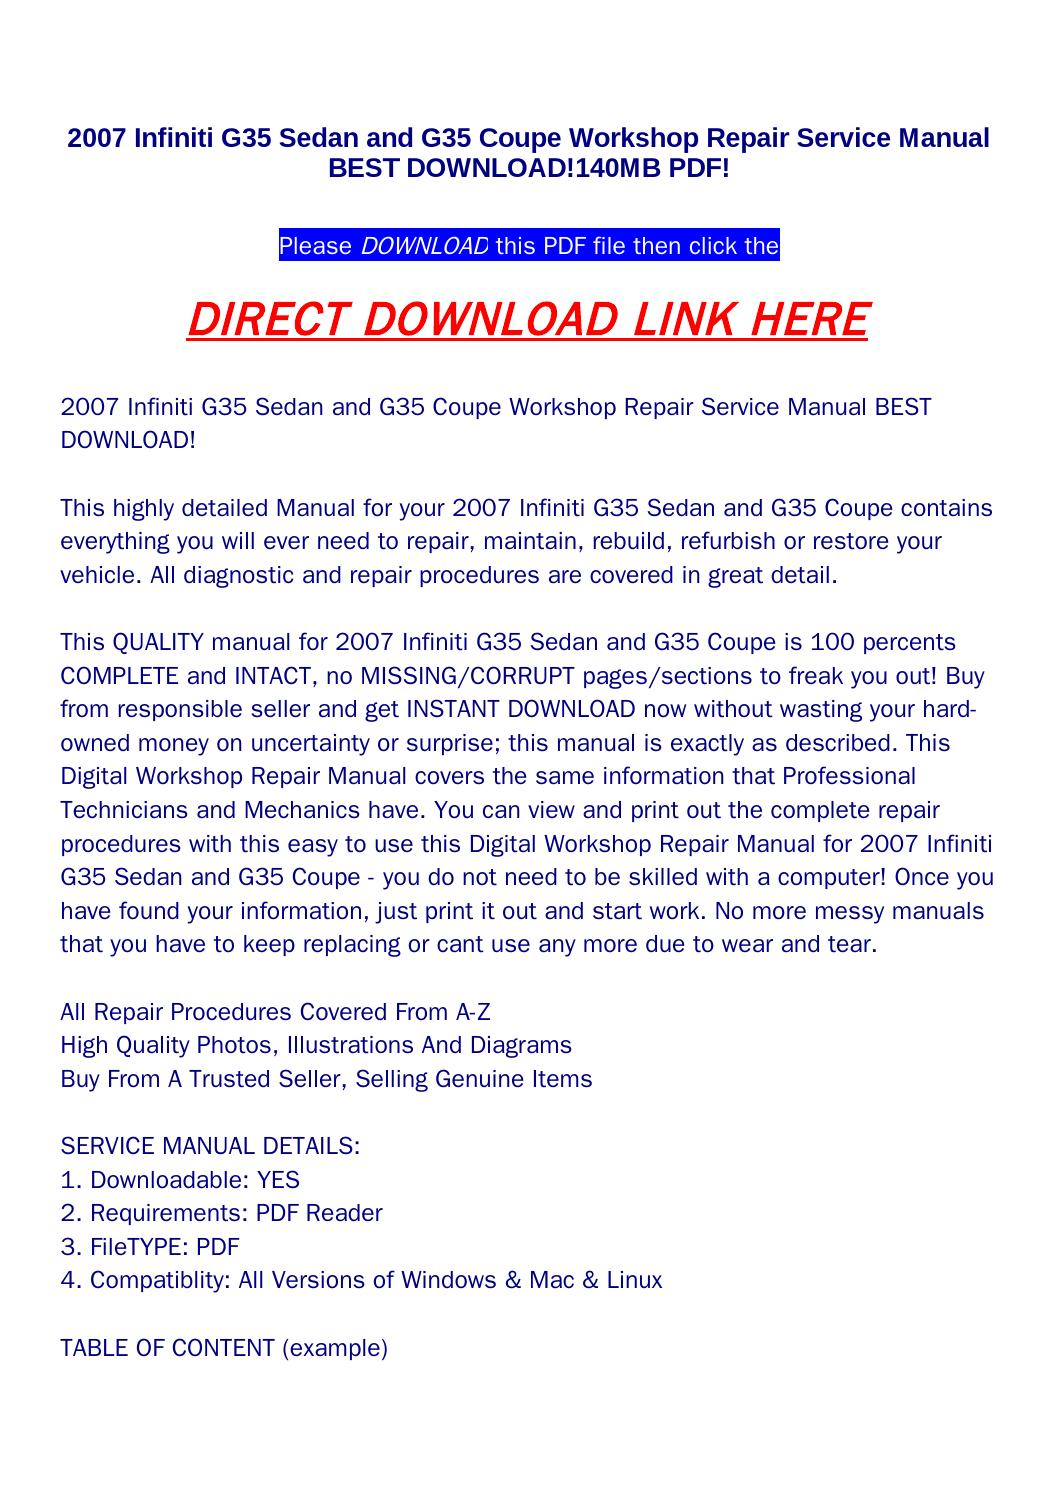 2007 infiniti g35 sedan and g35 coupe workshop repair service manual best  download!140mb pdf! by returnqqv - issuu